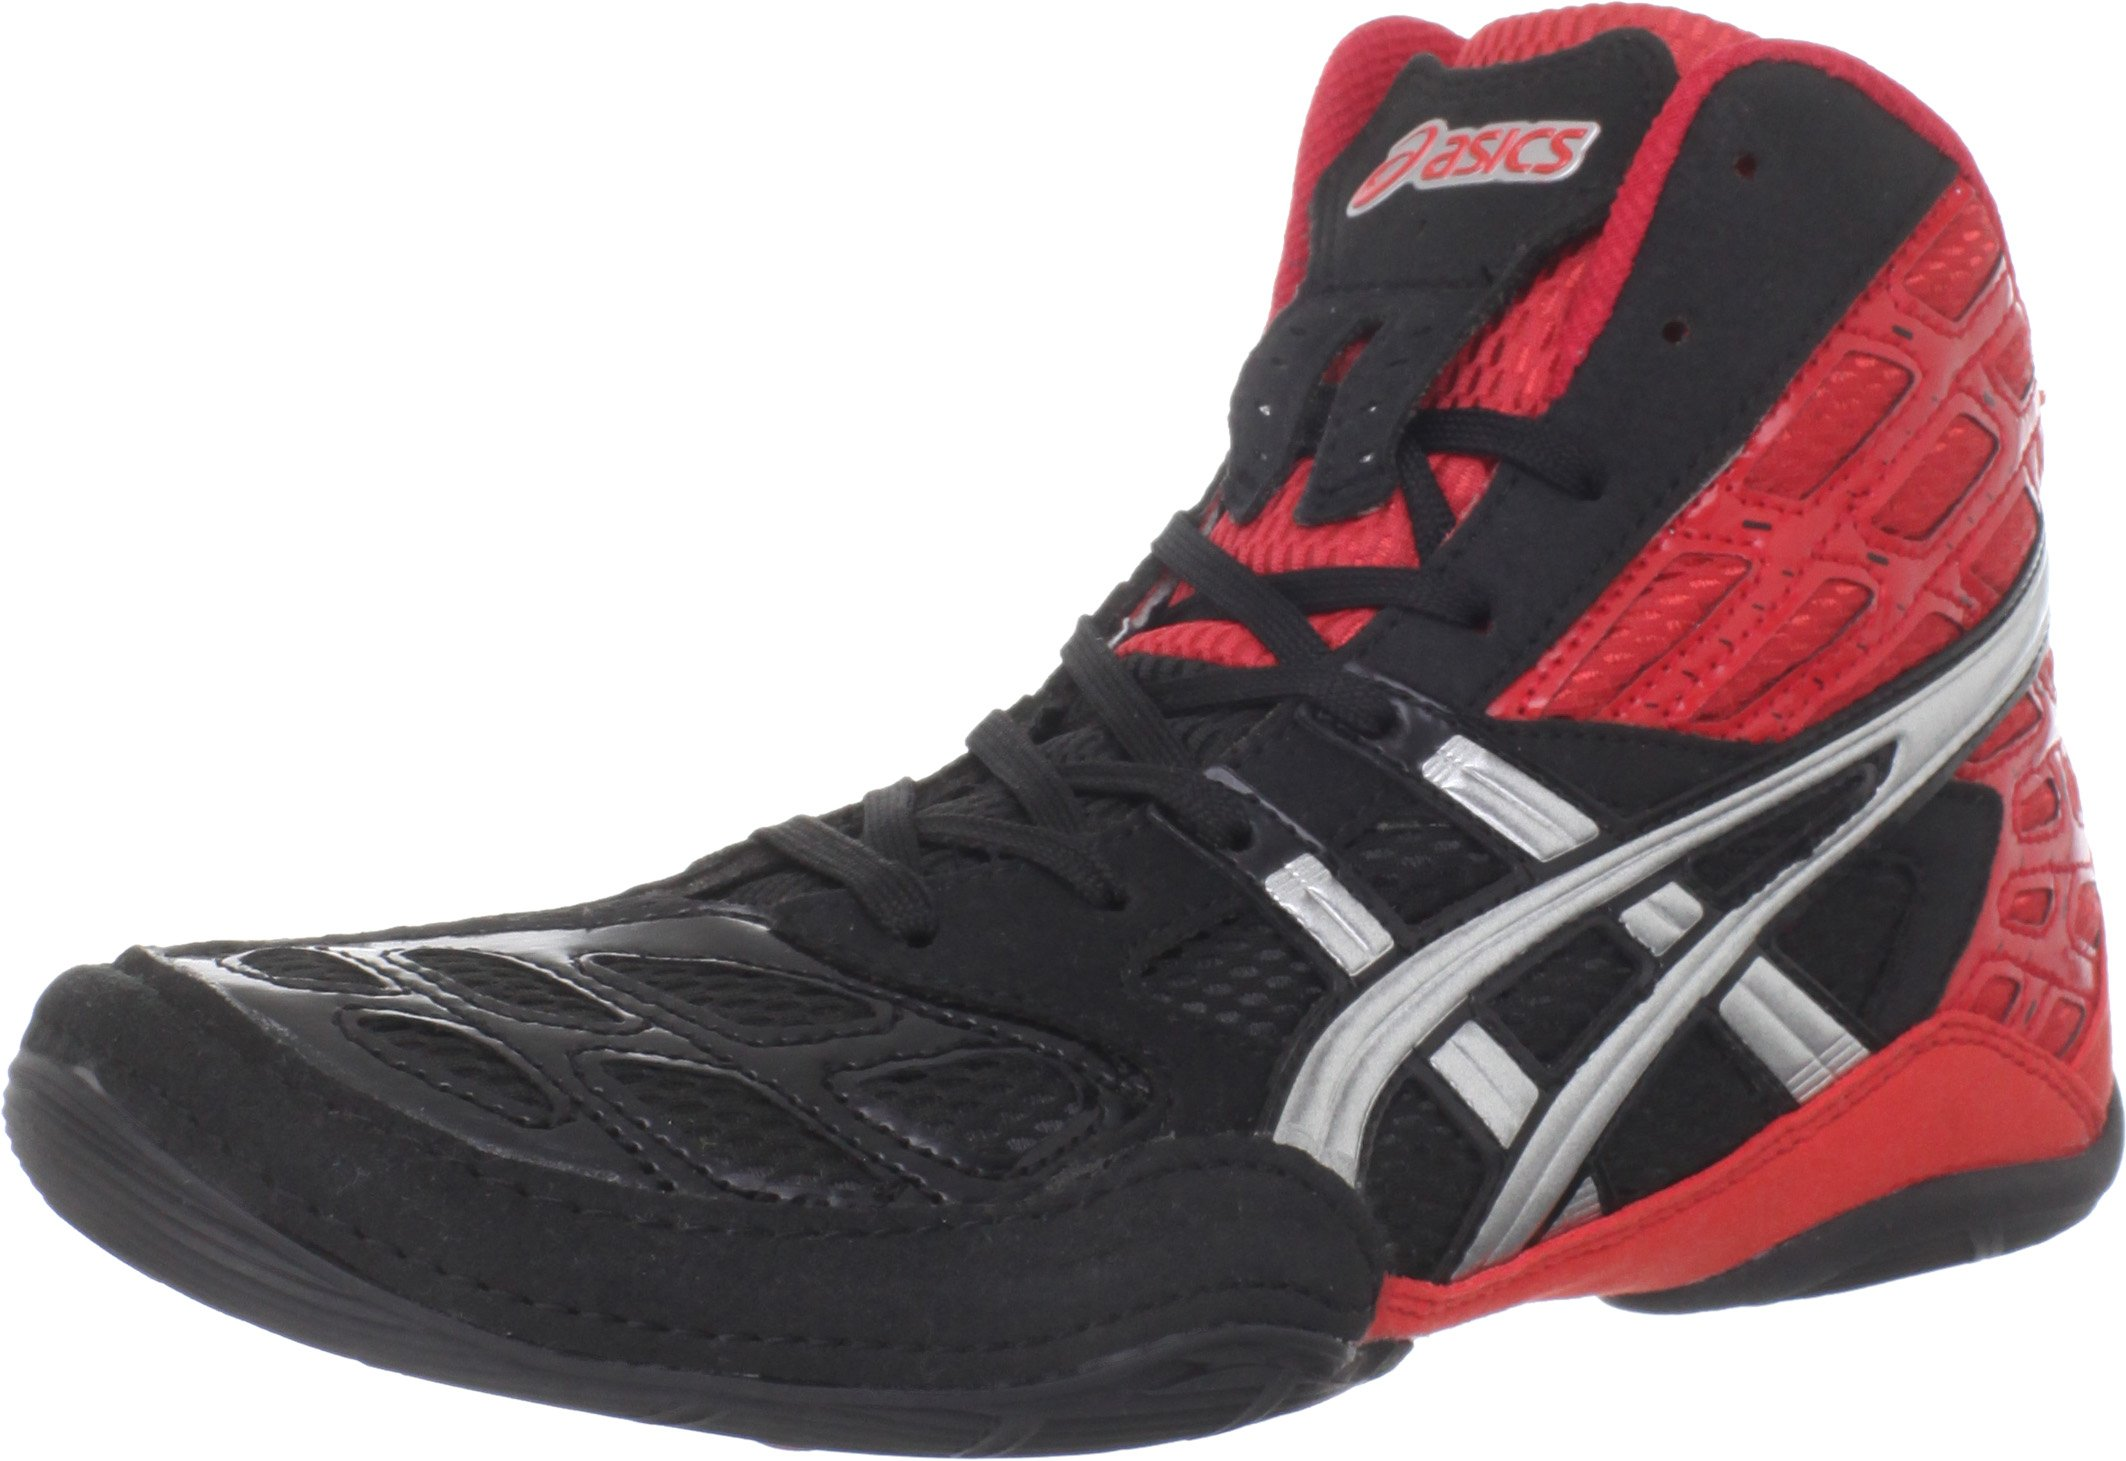 ASICS Men's Split Second 9 Wrestling Shoe,Red/Silver/Black,13 M US by ASICS